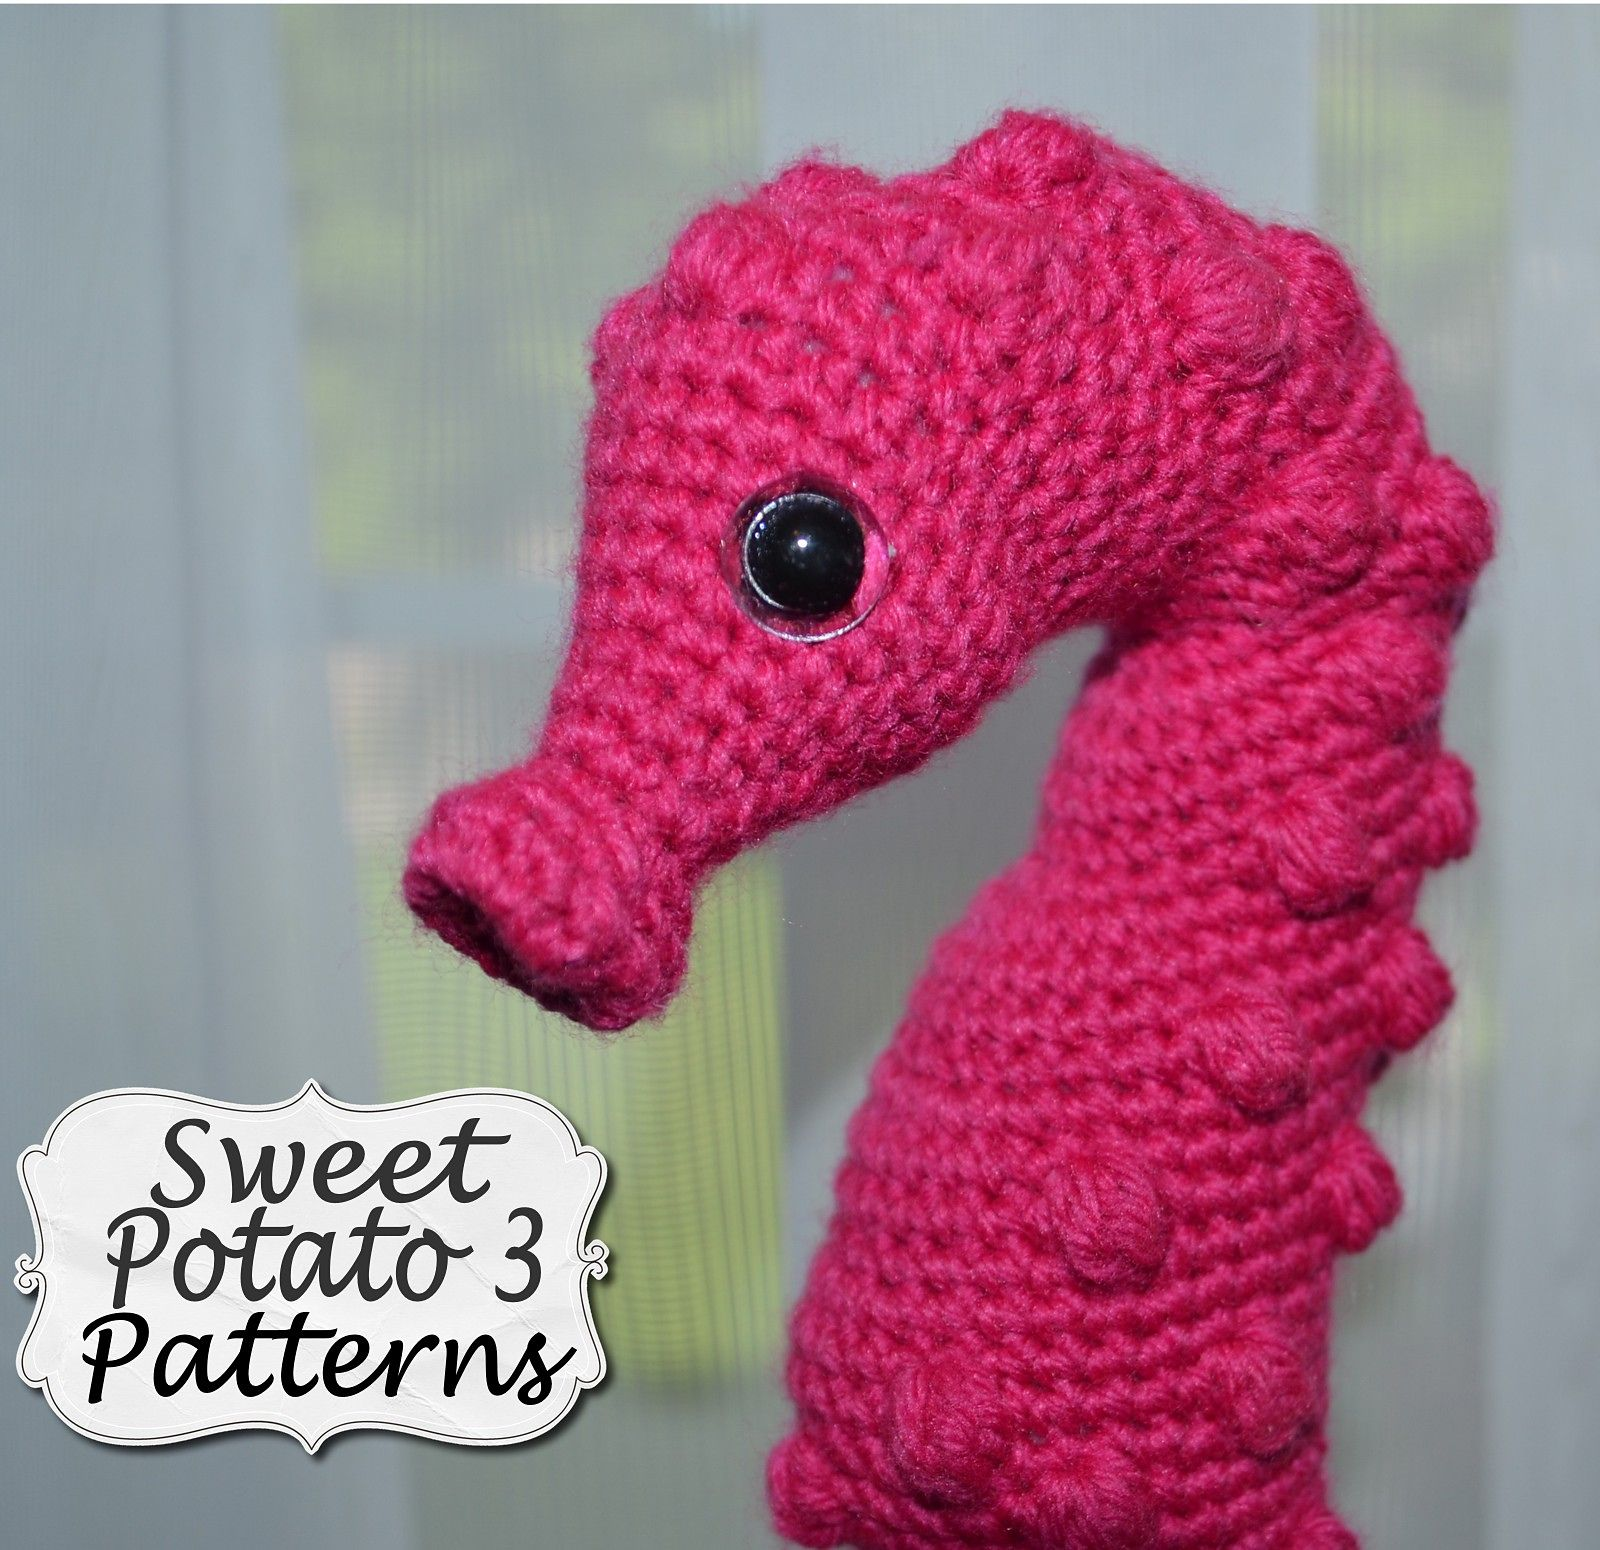 Pygmy seahorse stuffy pattern by christins from my sweet potato 3 this crochet pattern comes with complete instructions for this adorable pygmy bankloansurffo Image collections